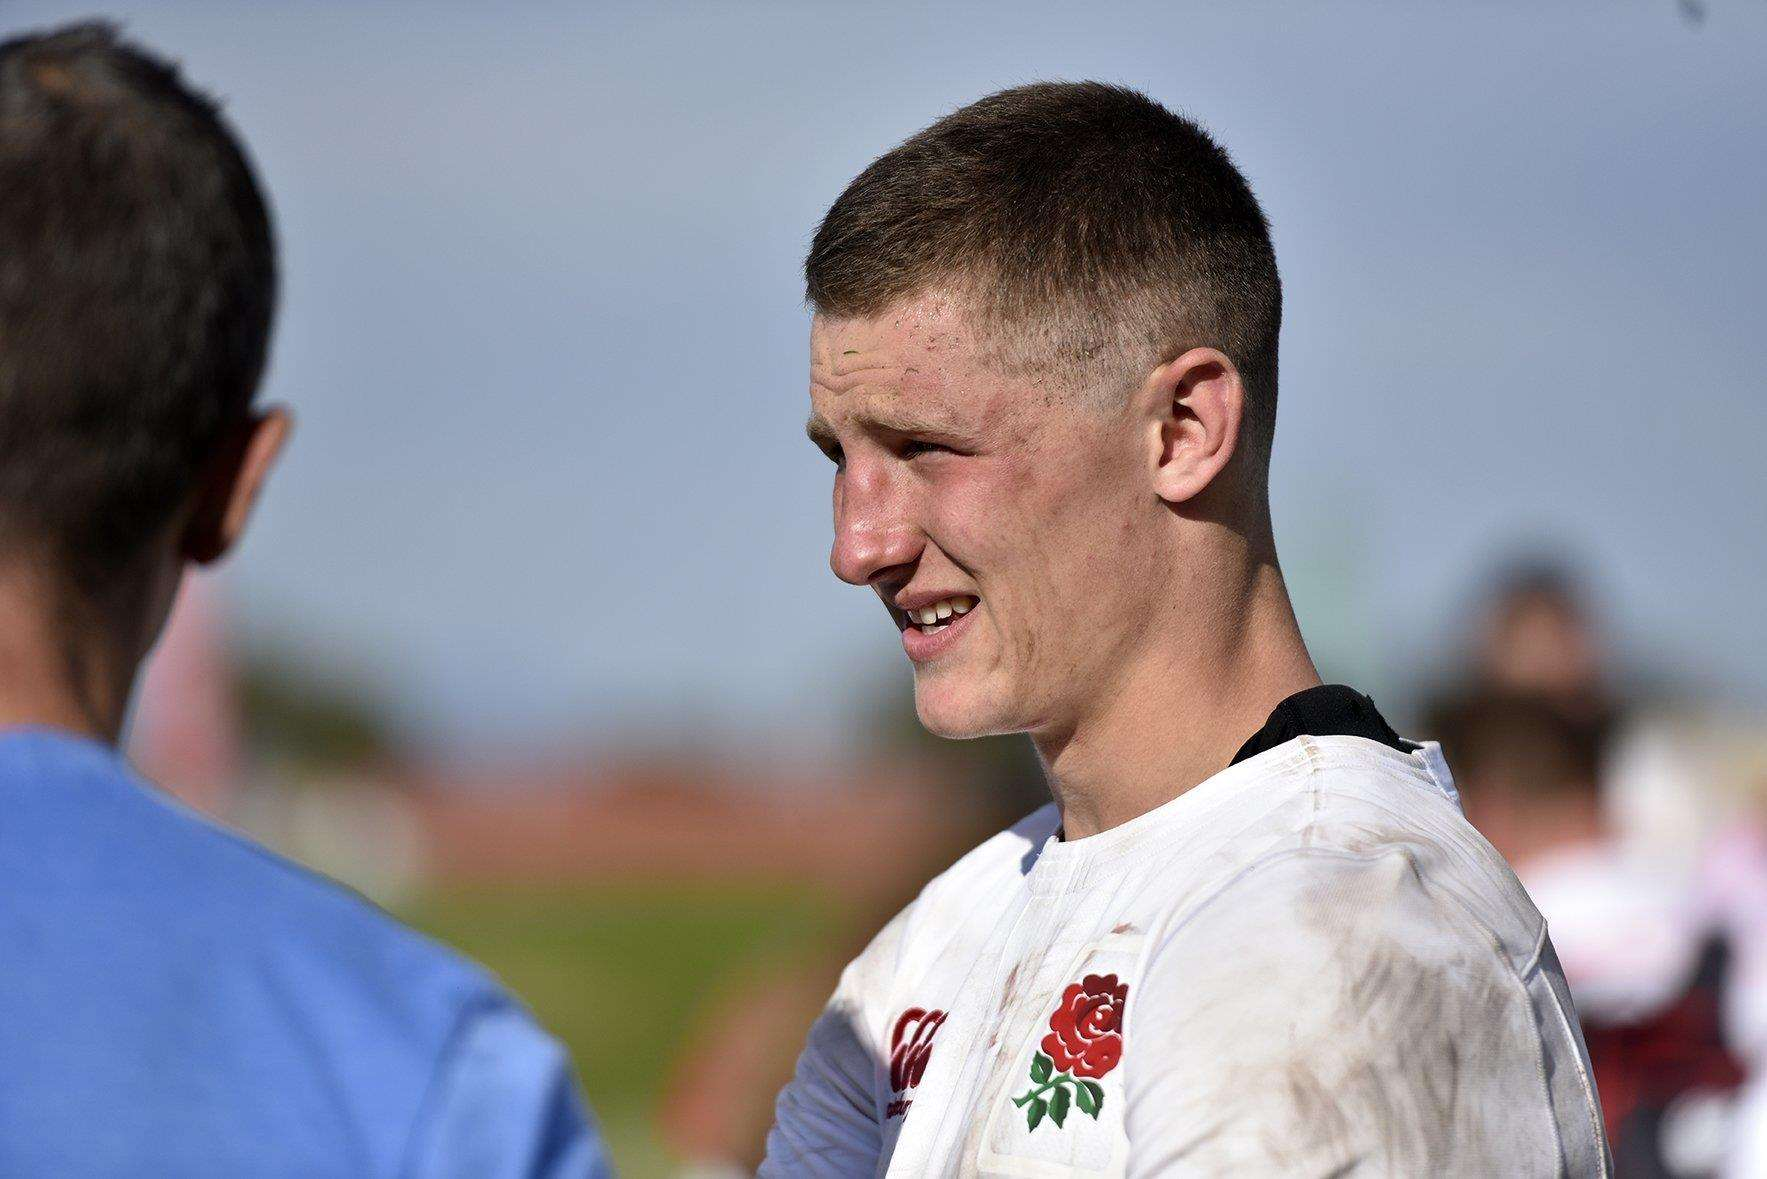 Former Cambridge Rugby Club mini and youth player Fraser Dingwall in action for England. Picture: David Spink/RFU. (6912210)